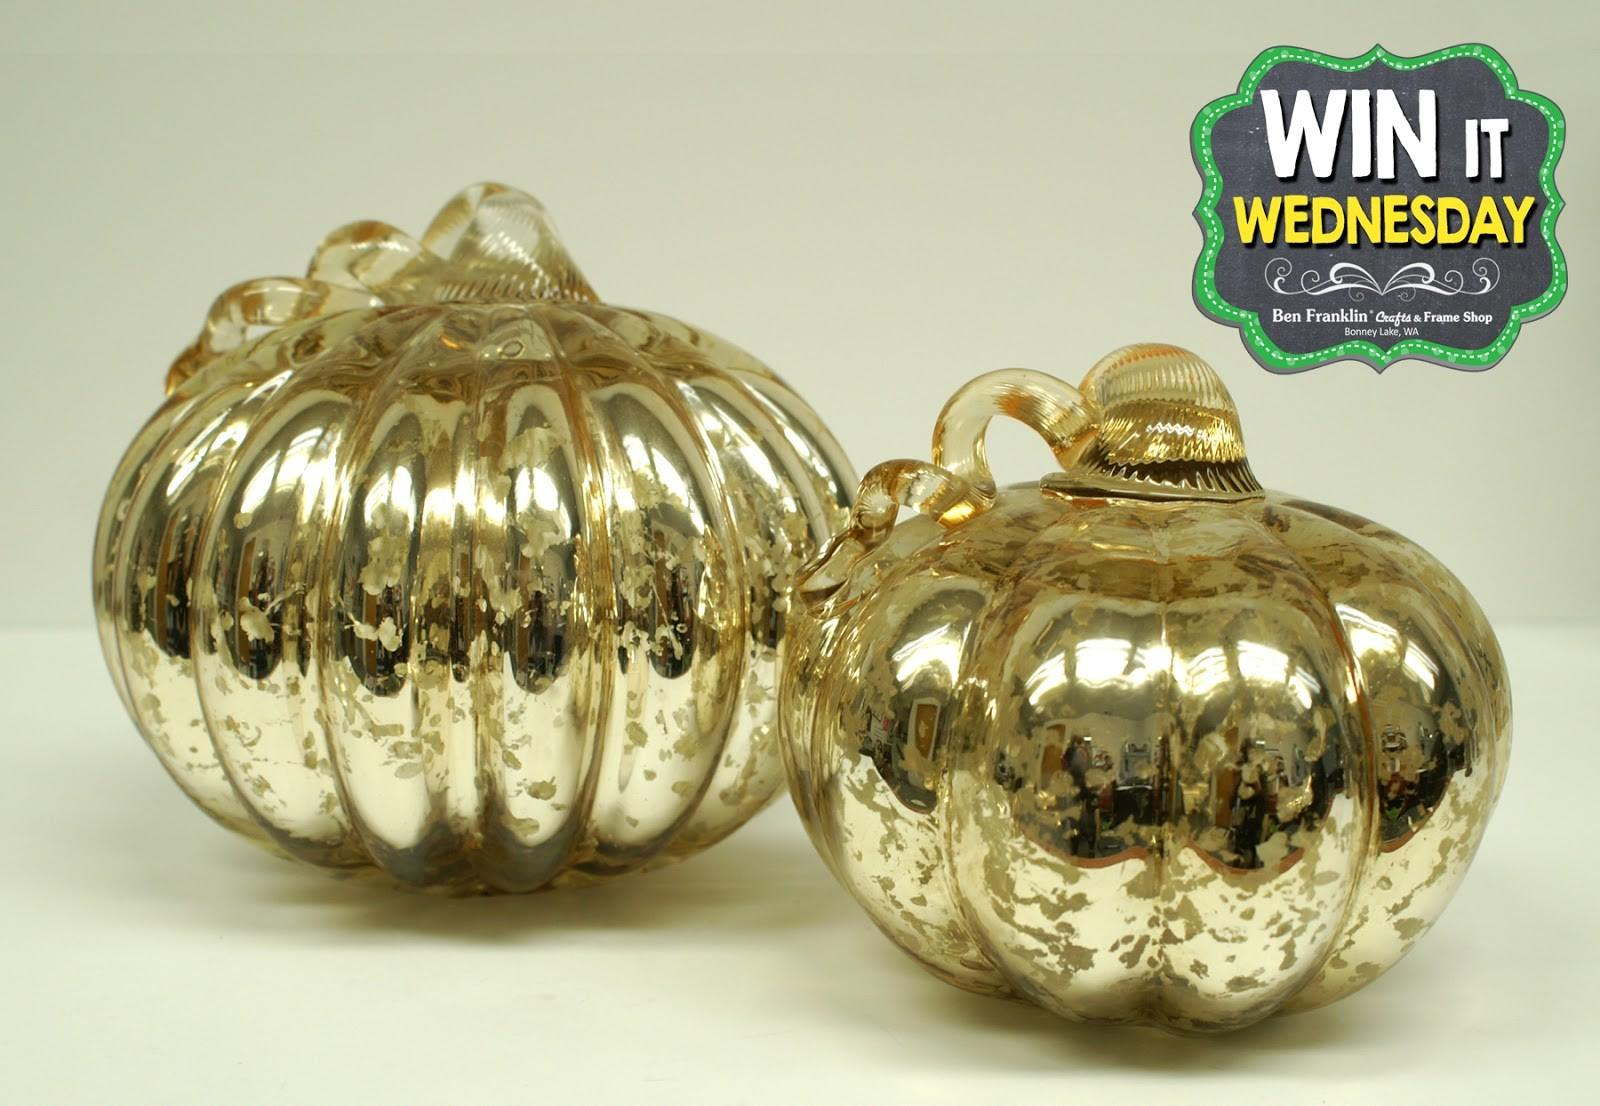 Ben Franklin Crafts Frame Shop Win Wed Glass Pumpkins